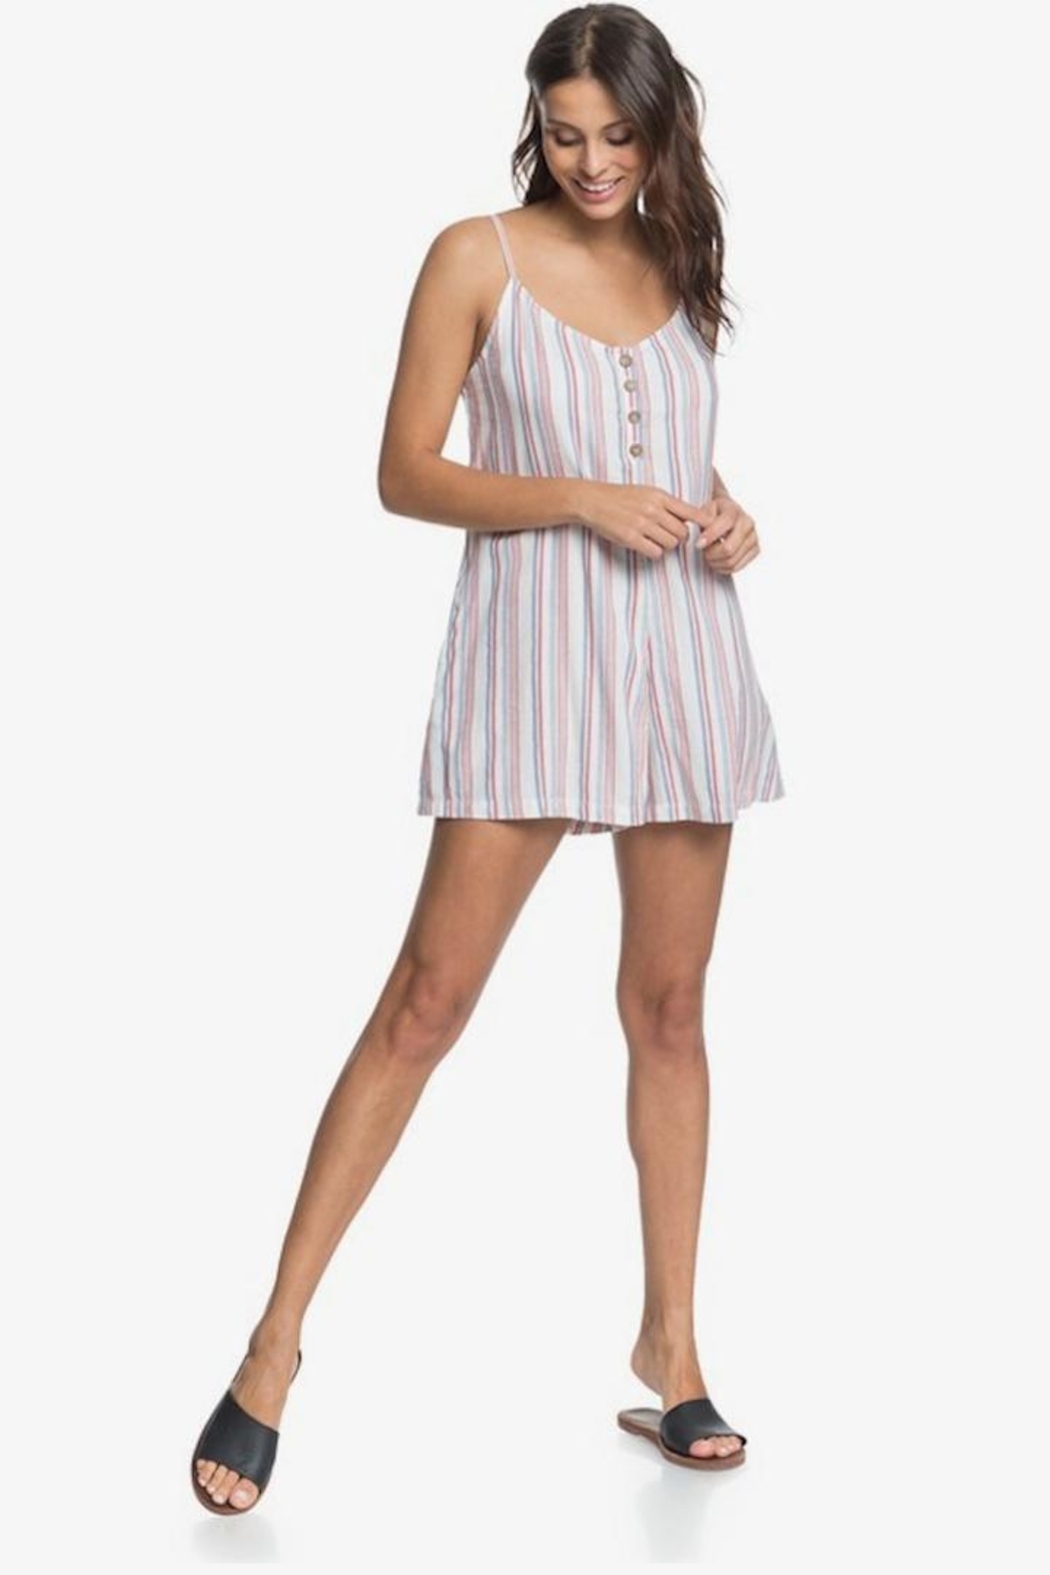 Roxy Red White Blue-Romper - Main Image